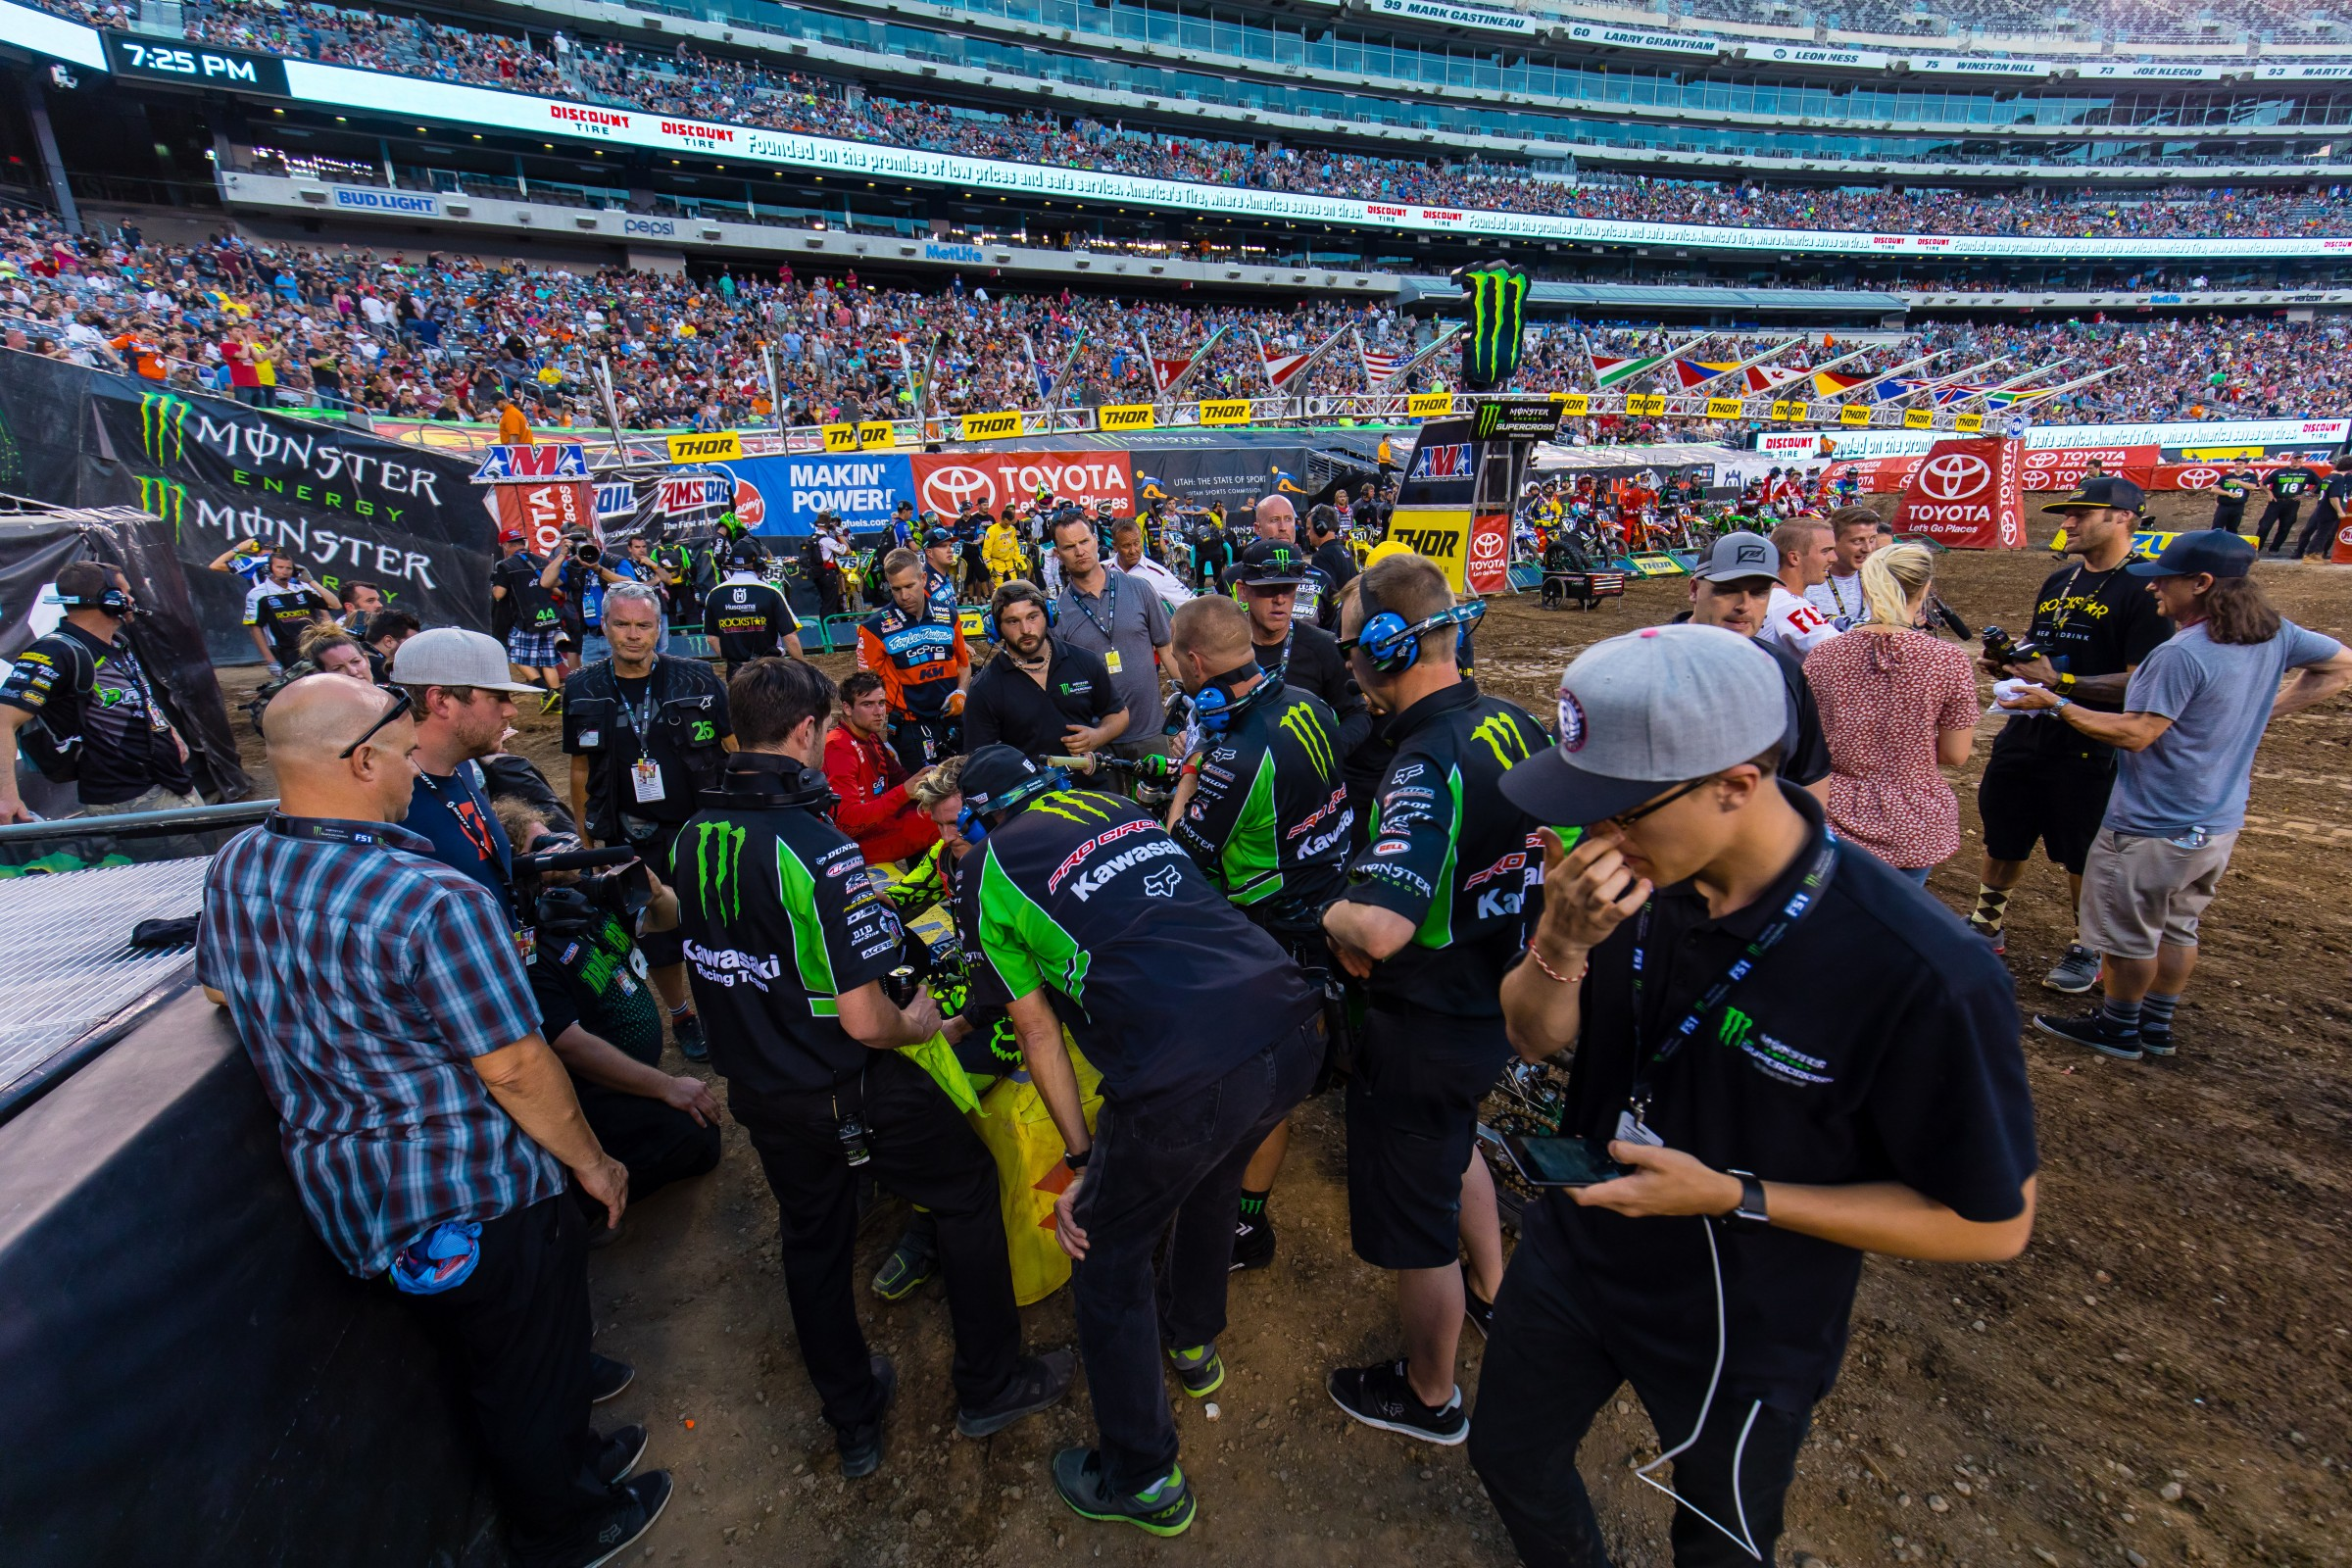 The Pro Circuit Kawasaki team huddles around Savatgy after a tough main event in East Rutherford.